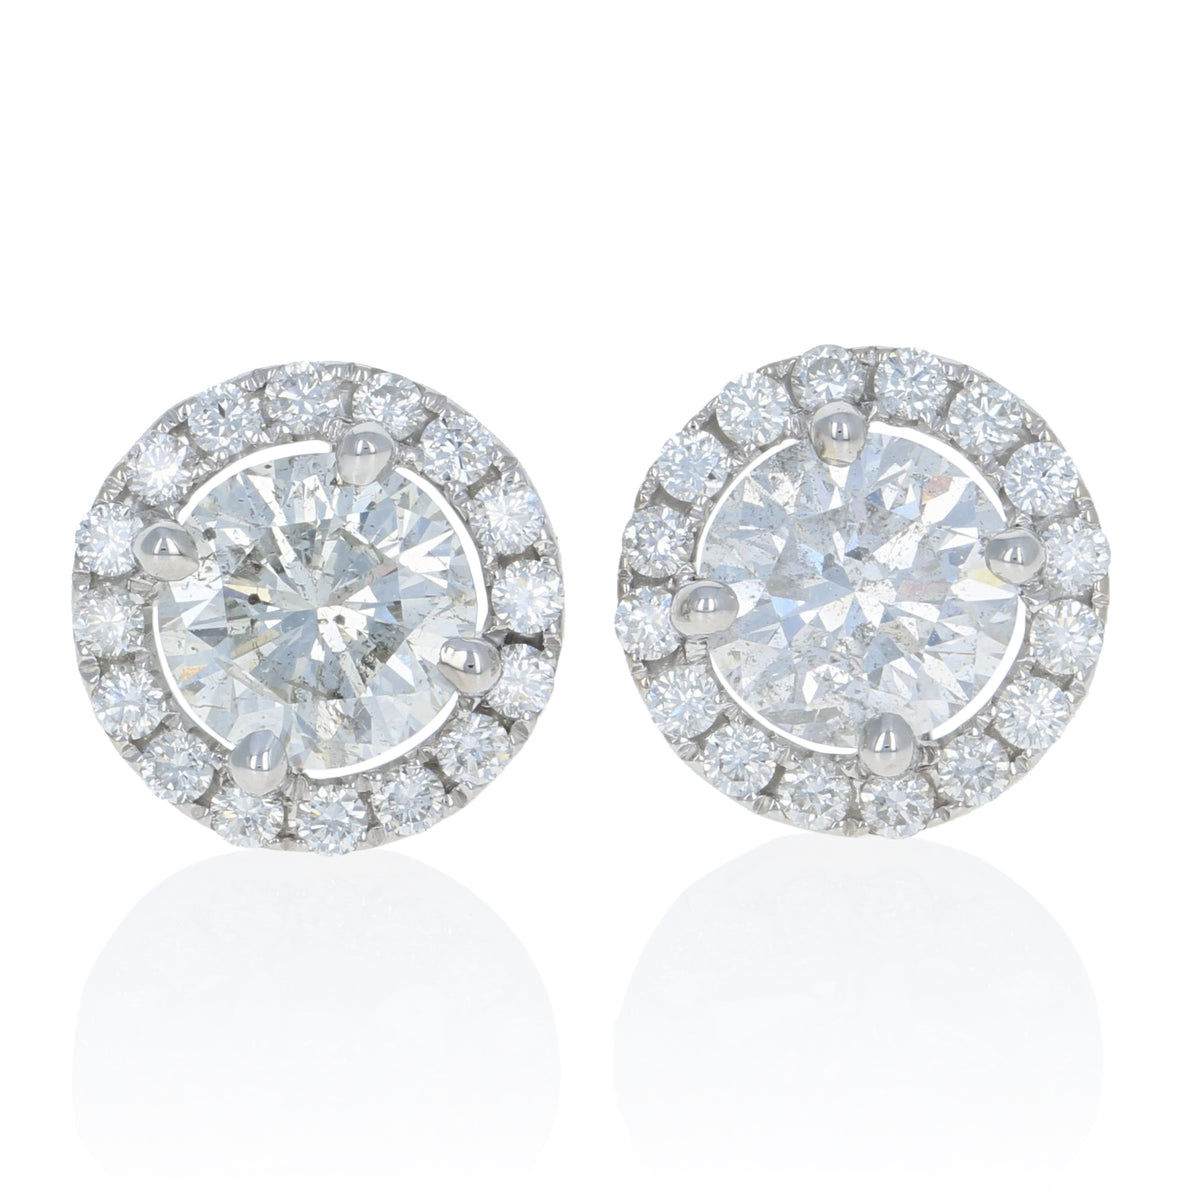 Diamond Earrings 2.62ctw